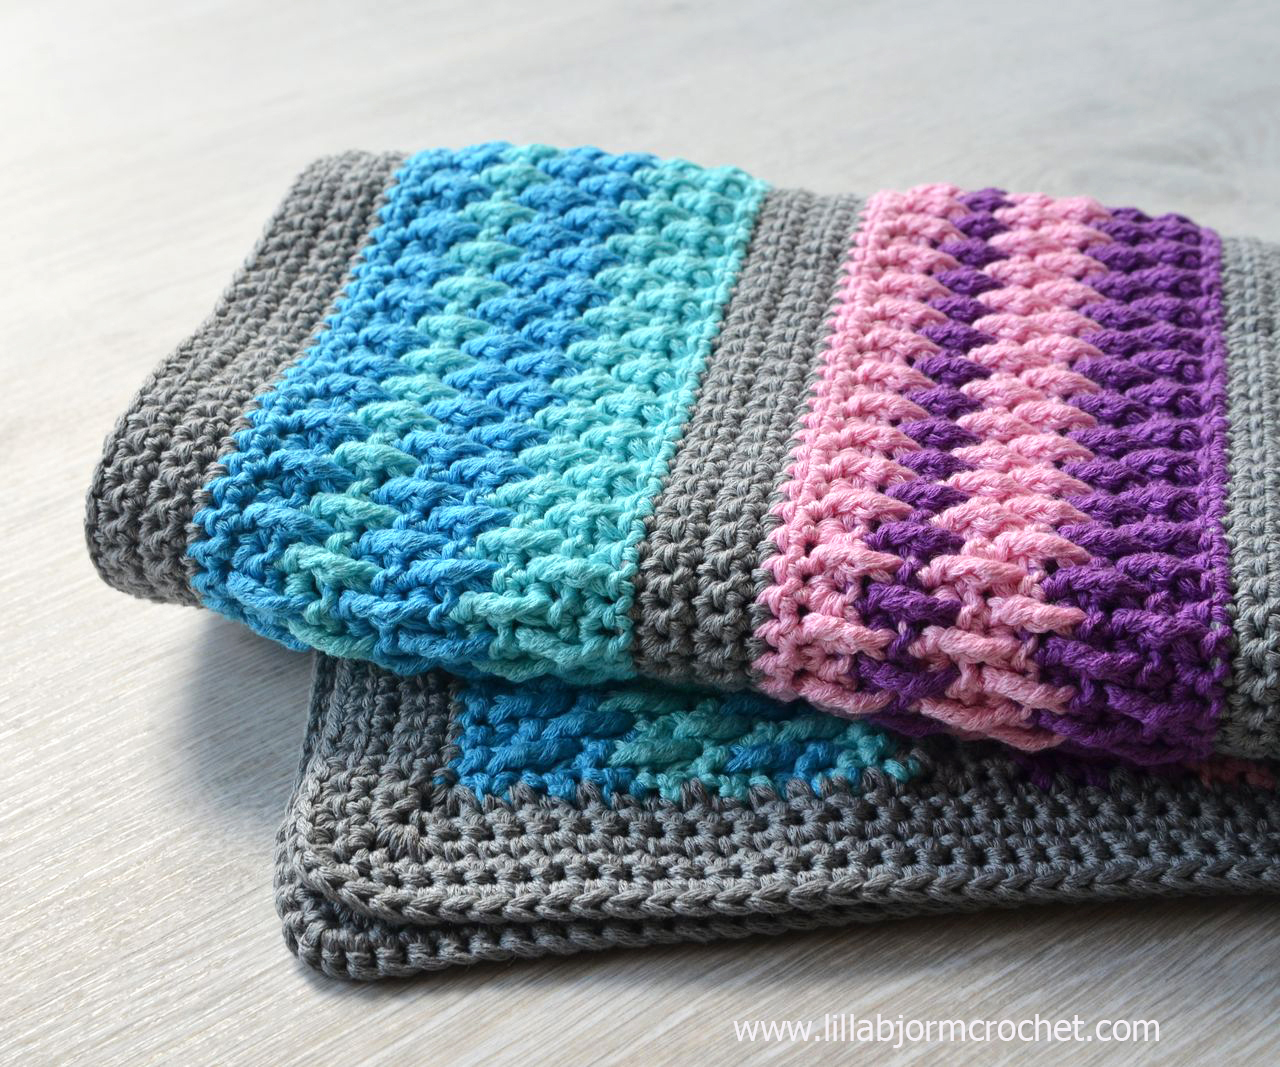 Crochet Bathmat. Free pattern by Lilla Bjorn. Made with Bloom yarn by Scheepjes.